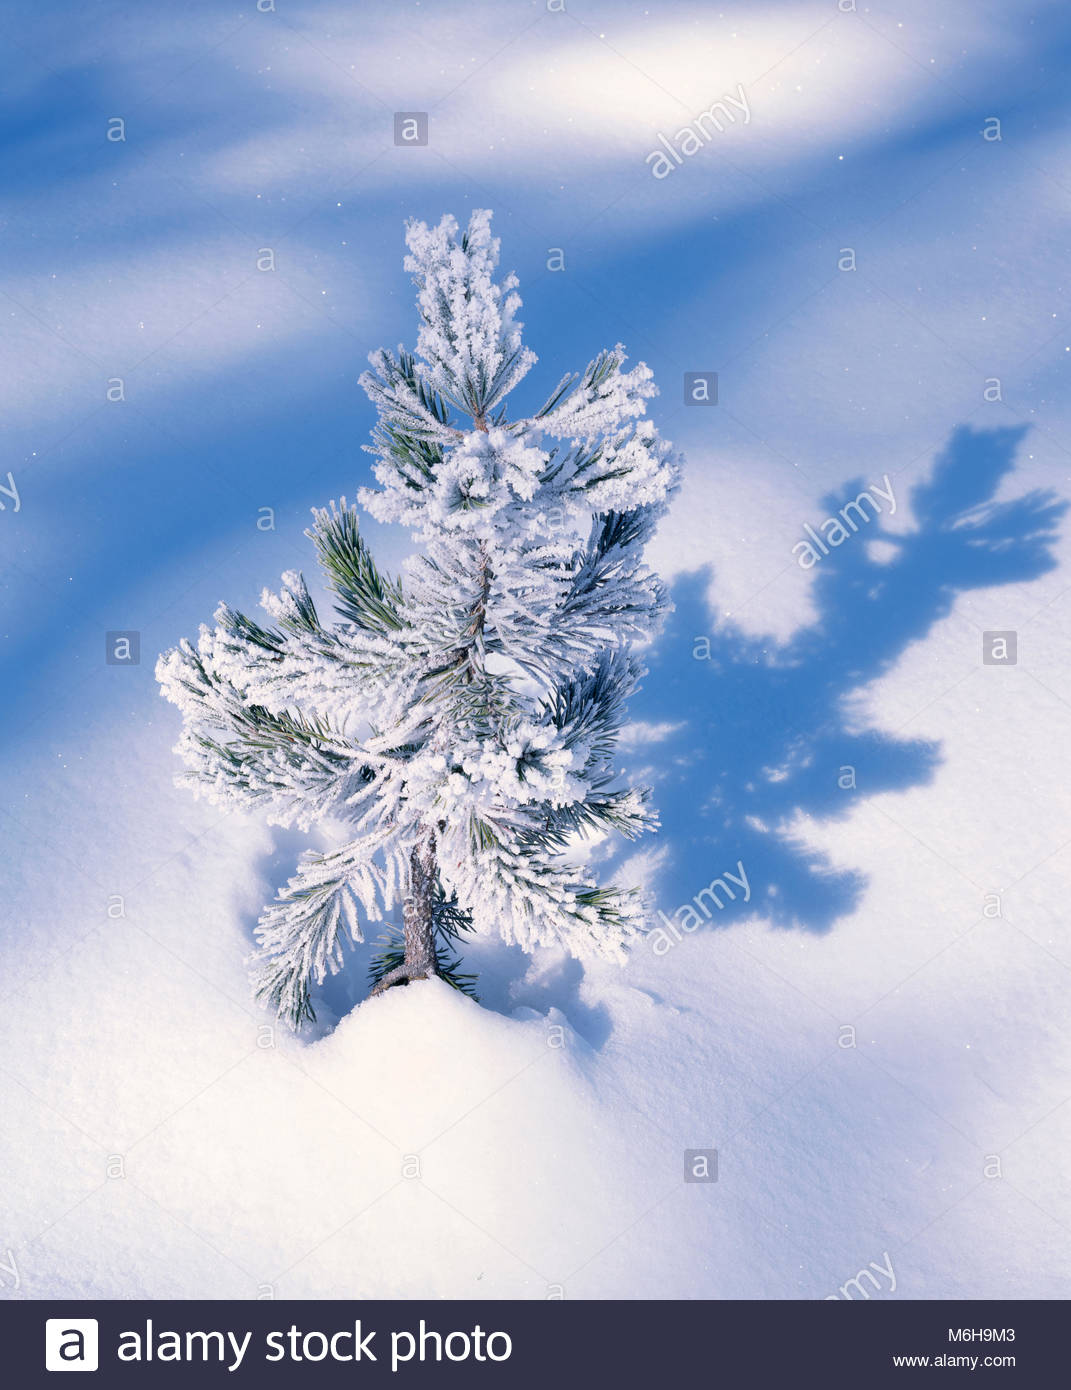 Lodgepole Pine with Frost, Yosemite National Park, California - Stock Image